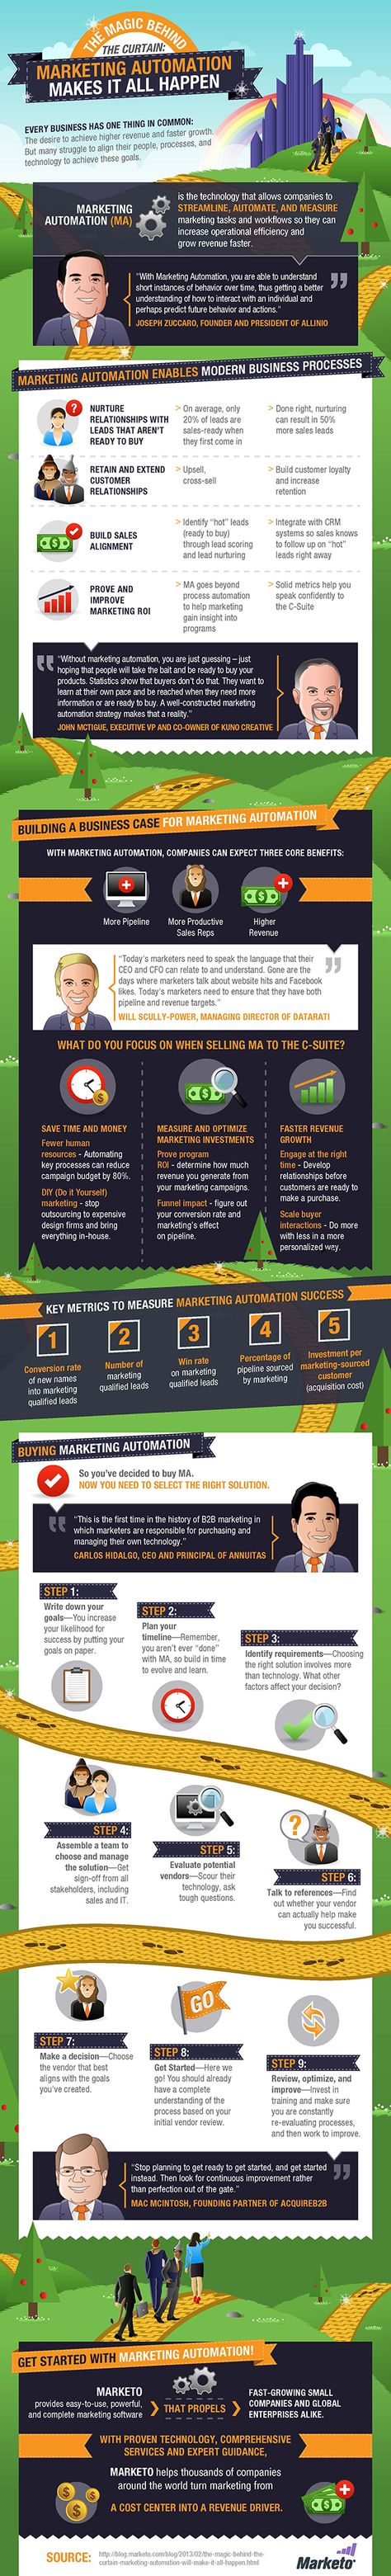 How Marketing Automation Makes Lead Acquisition and Customer Retention Much Easier [Infographic] | PrintRunner Blog